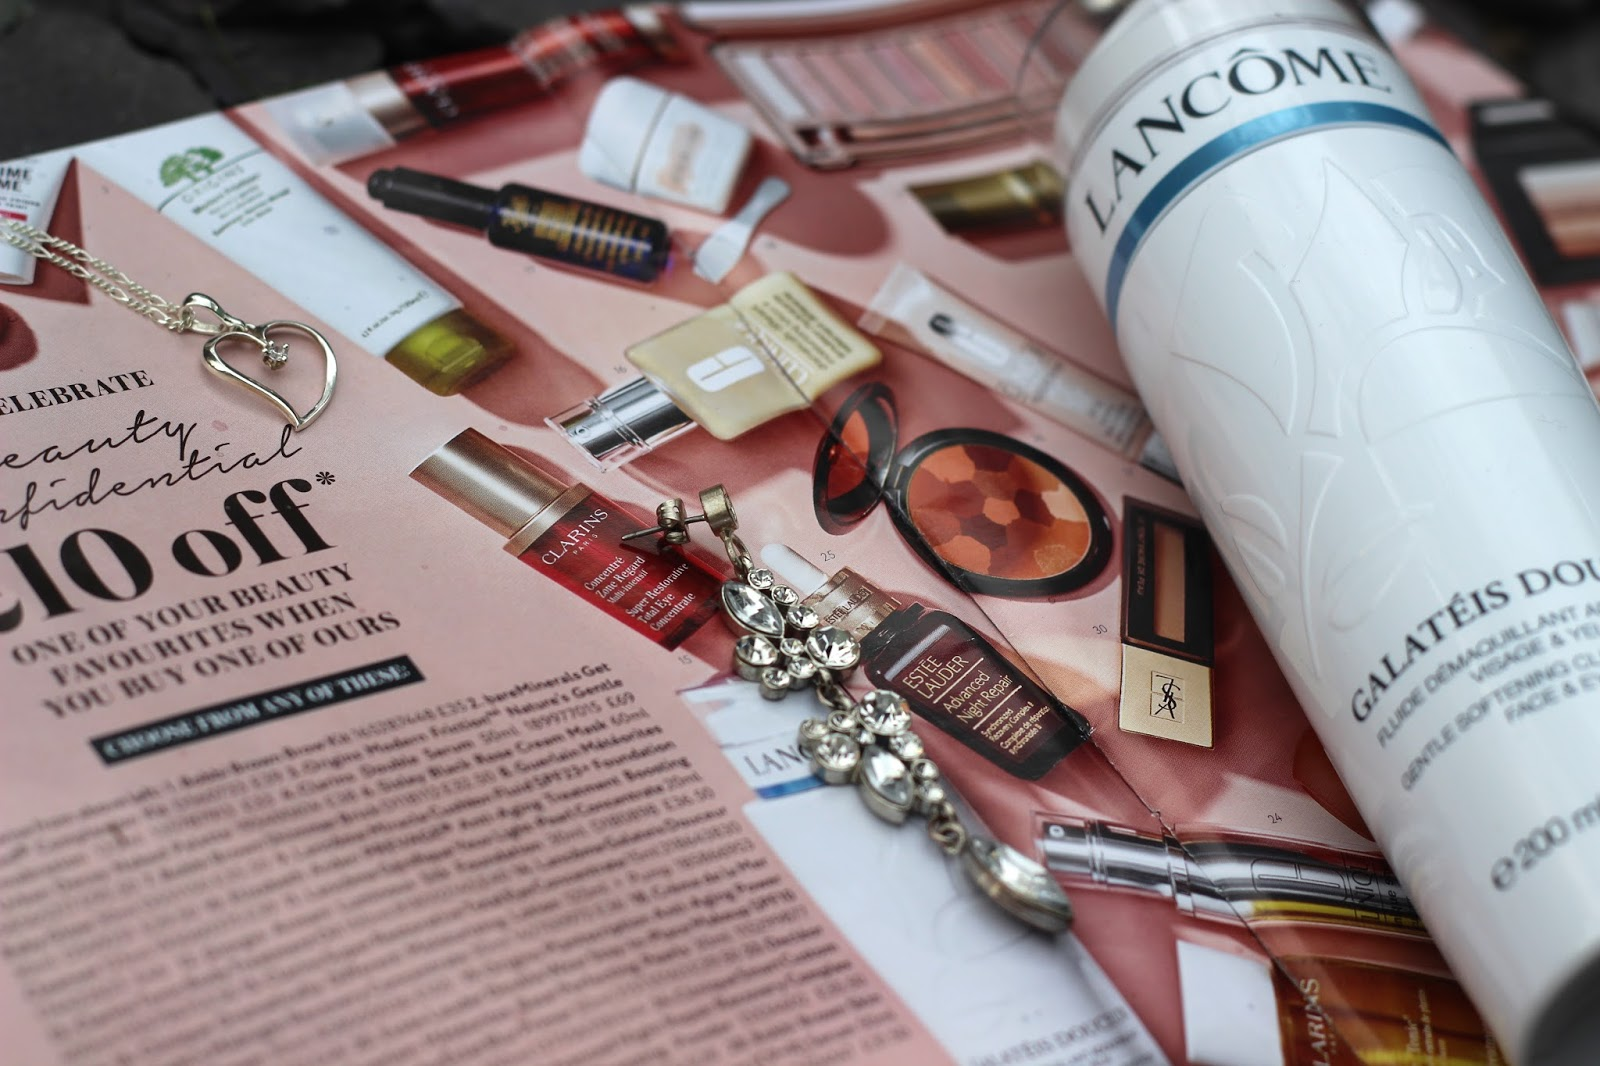 House of Fraser beauty confidential offer with Lancôme Galatéis Douceur